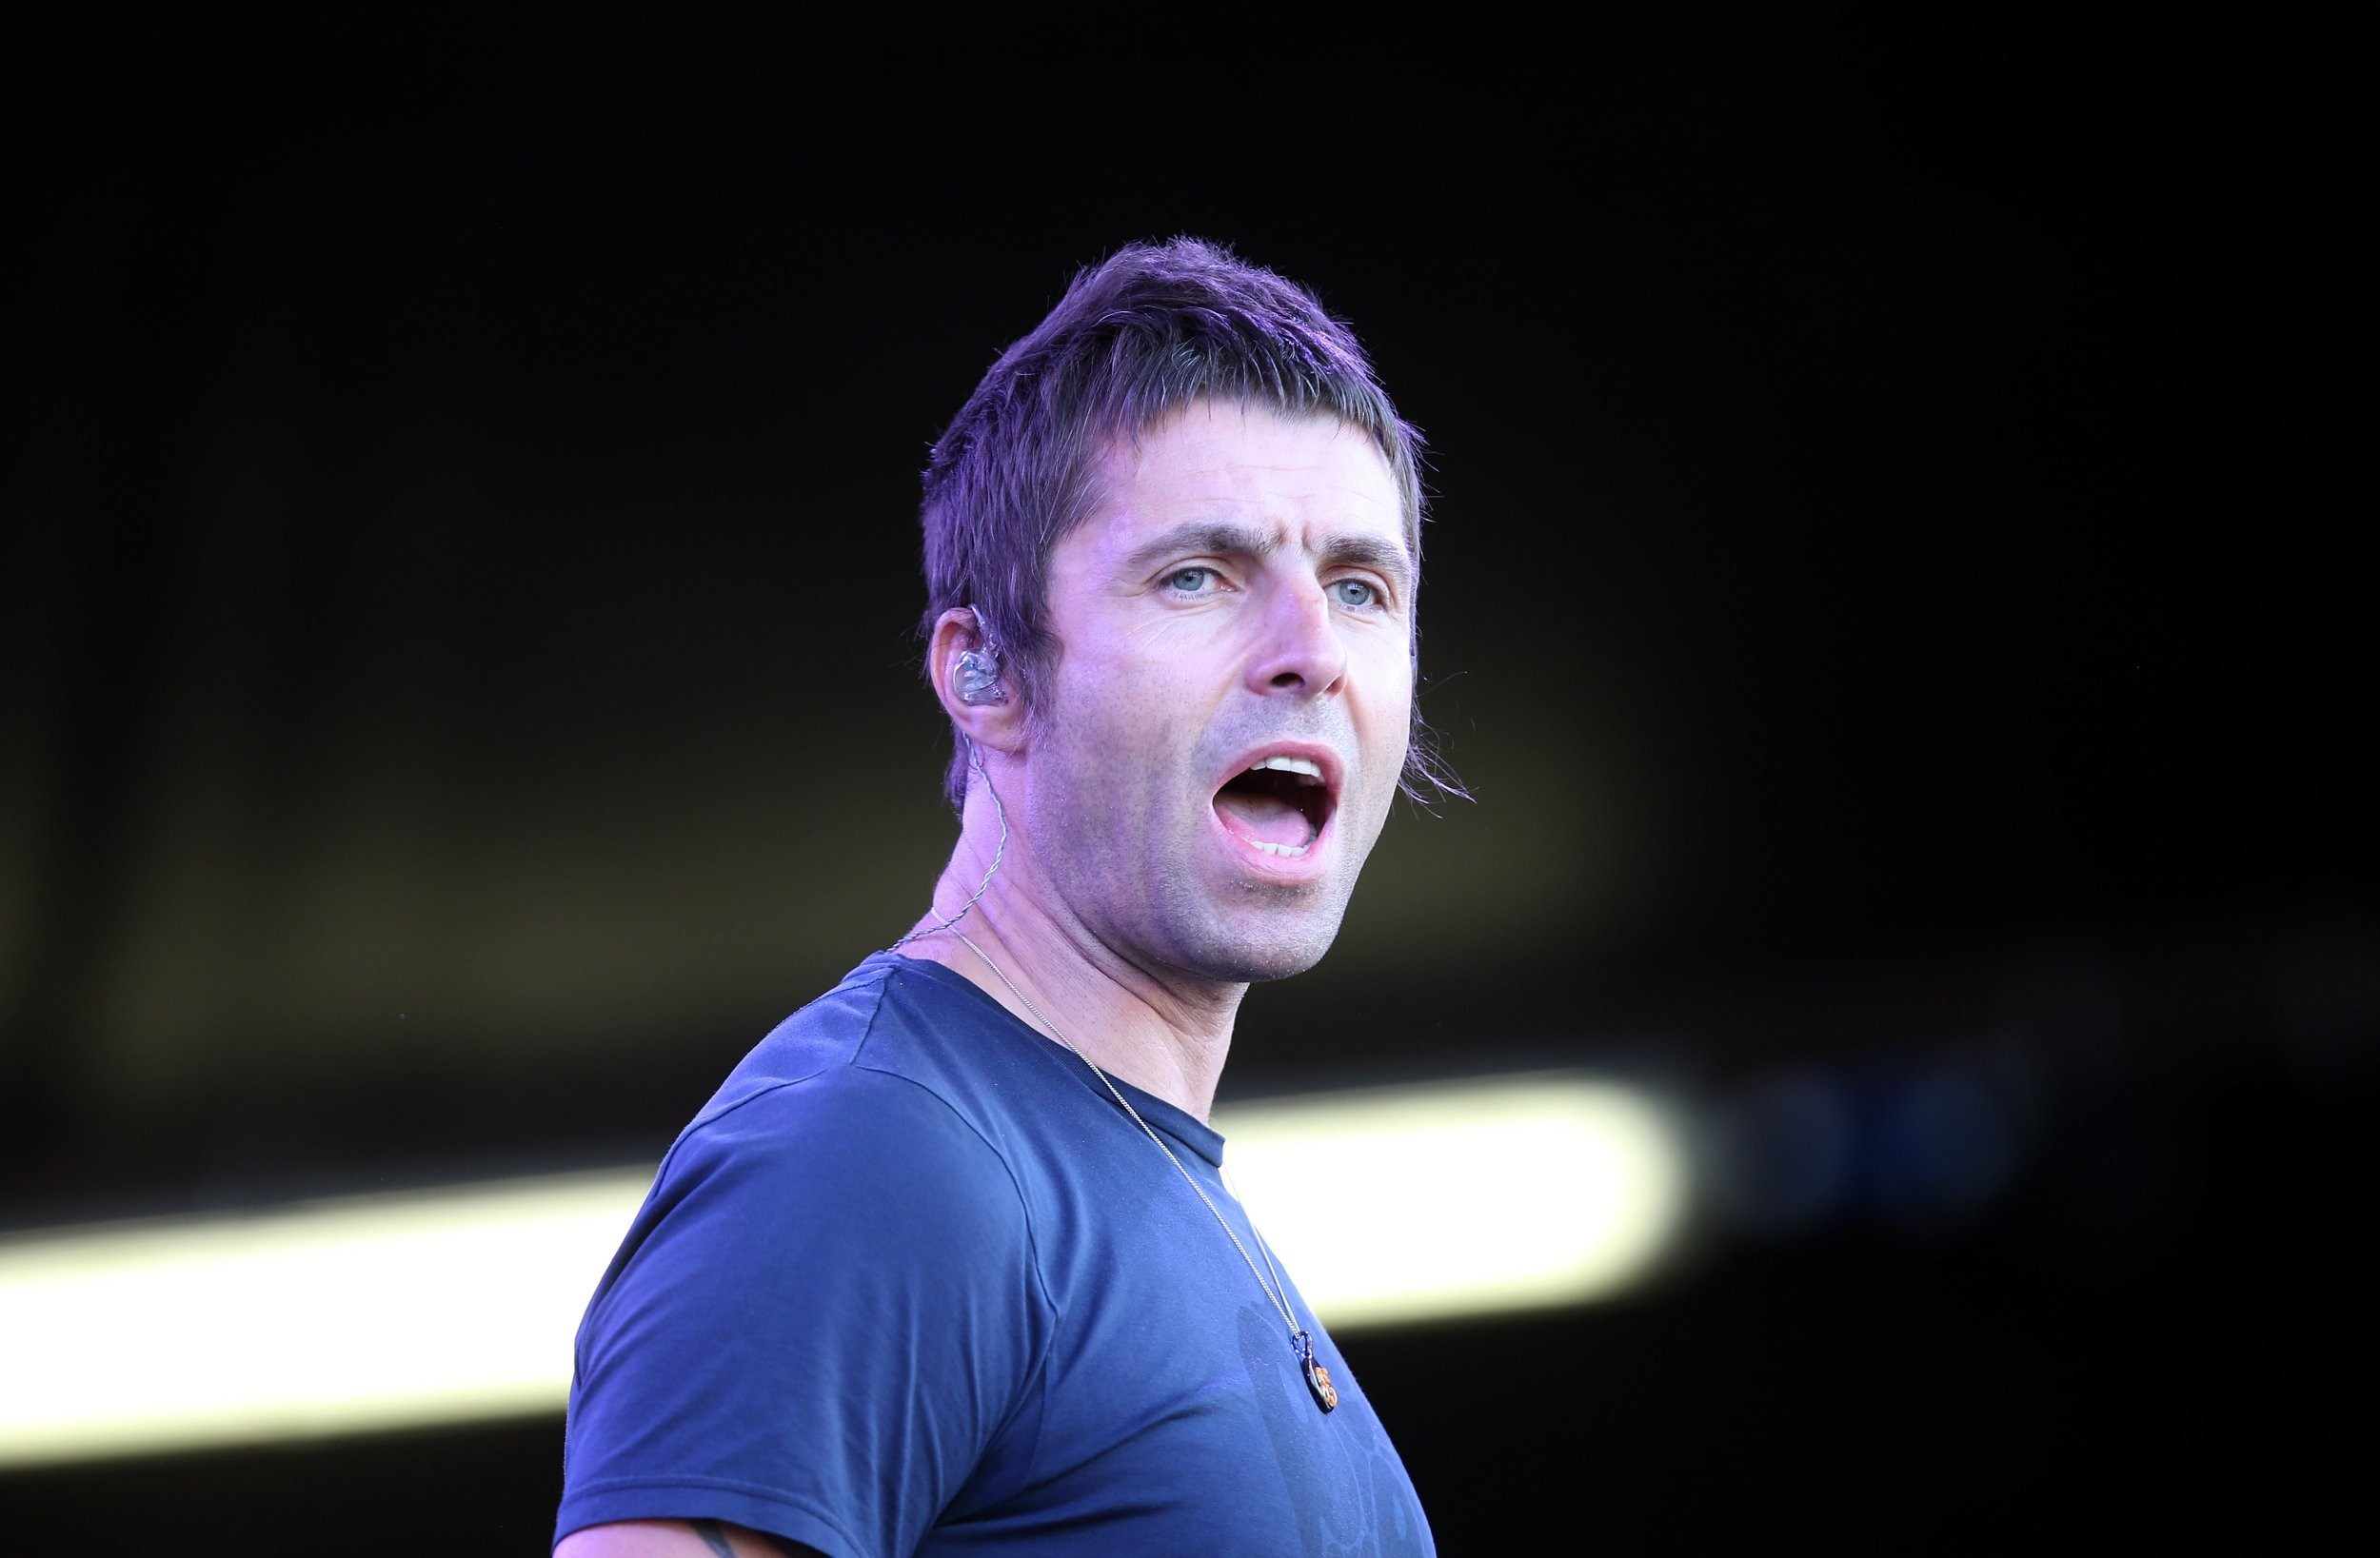 Oasis and Blur feud 'sparked by Liam Gallagher and Damon Blur love triangle'